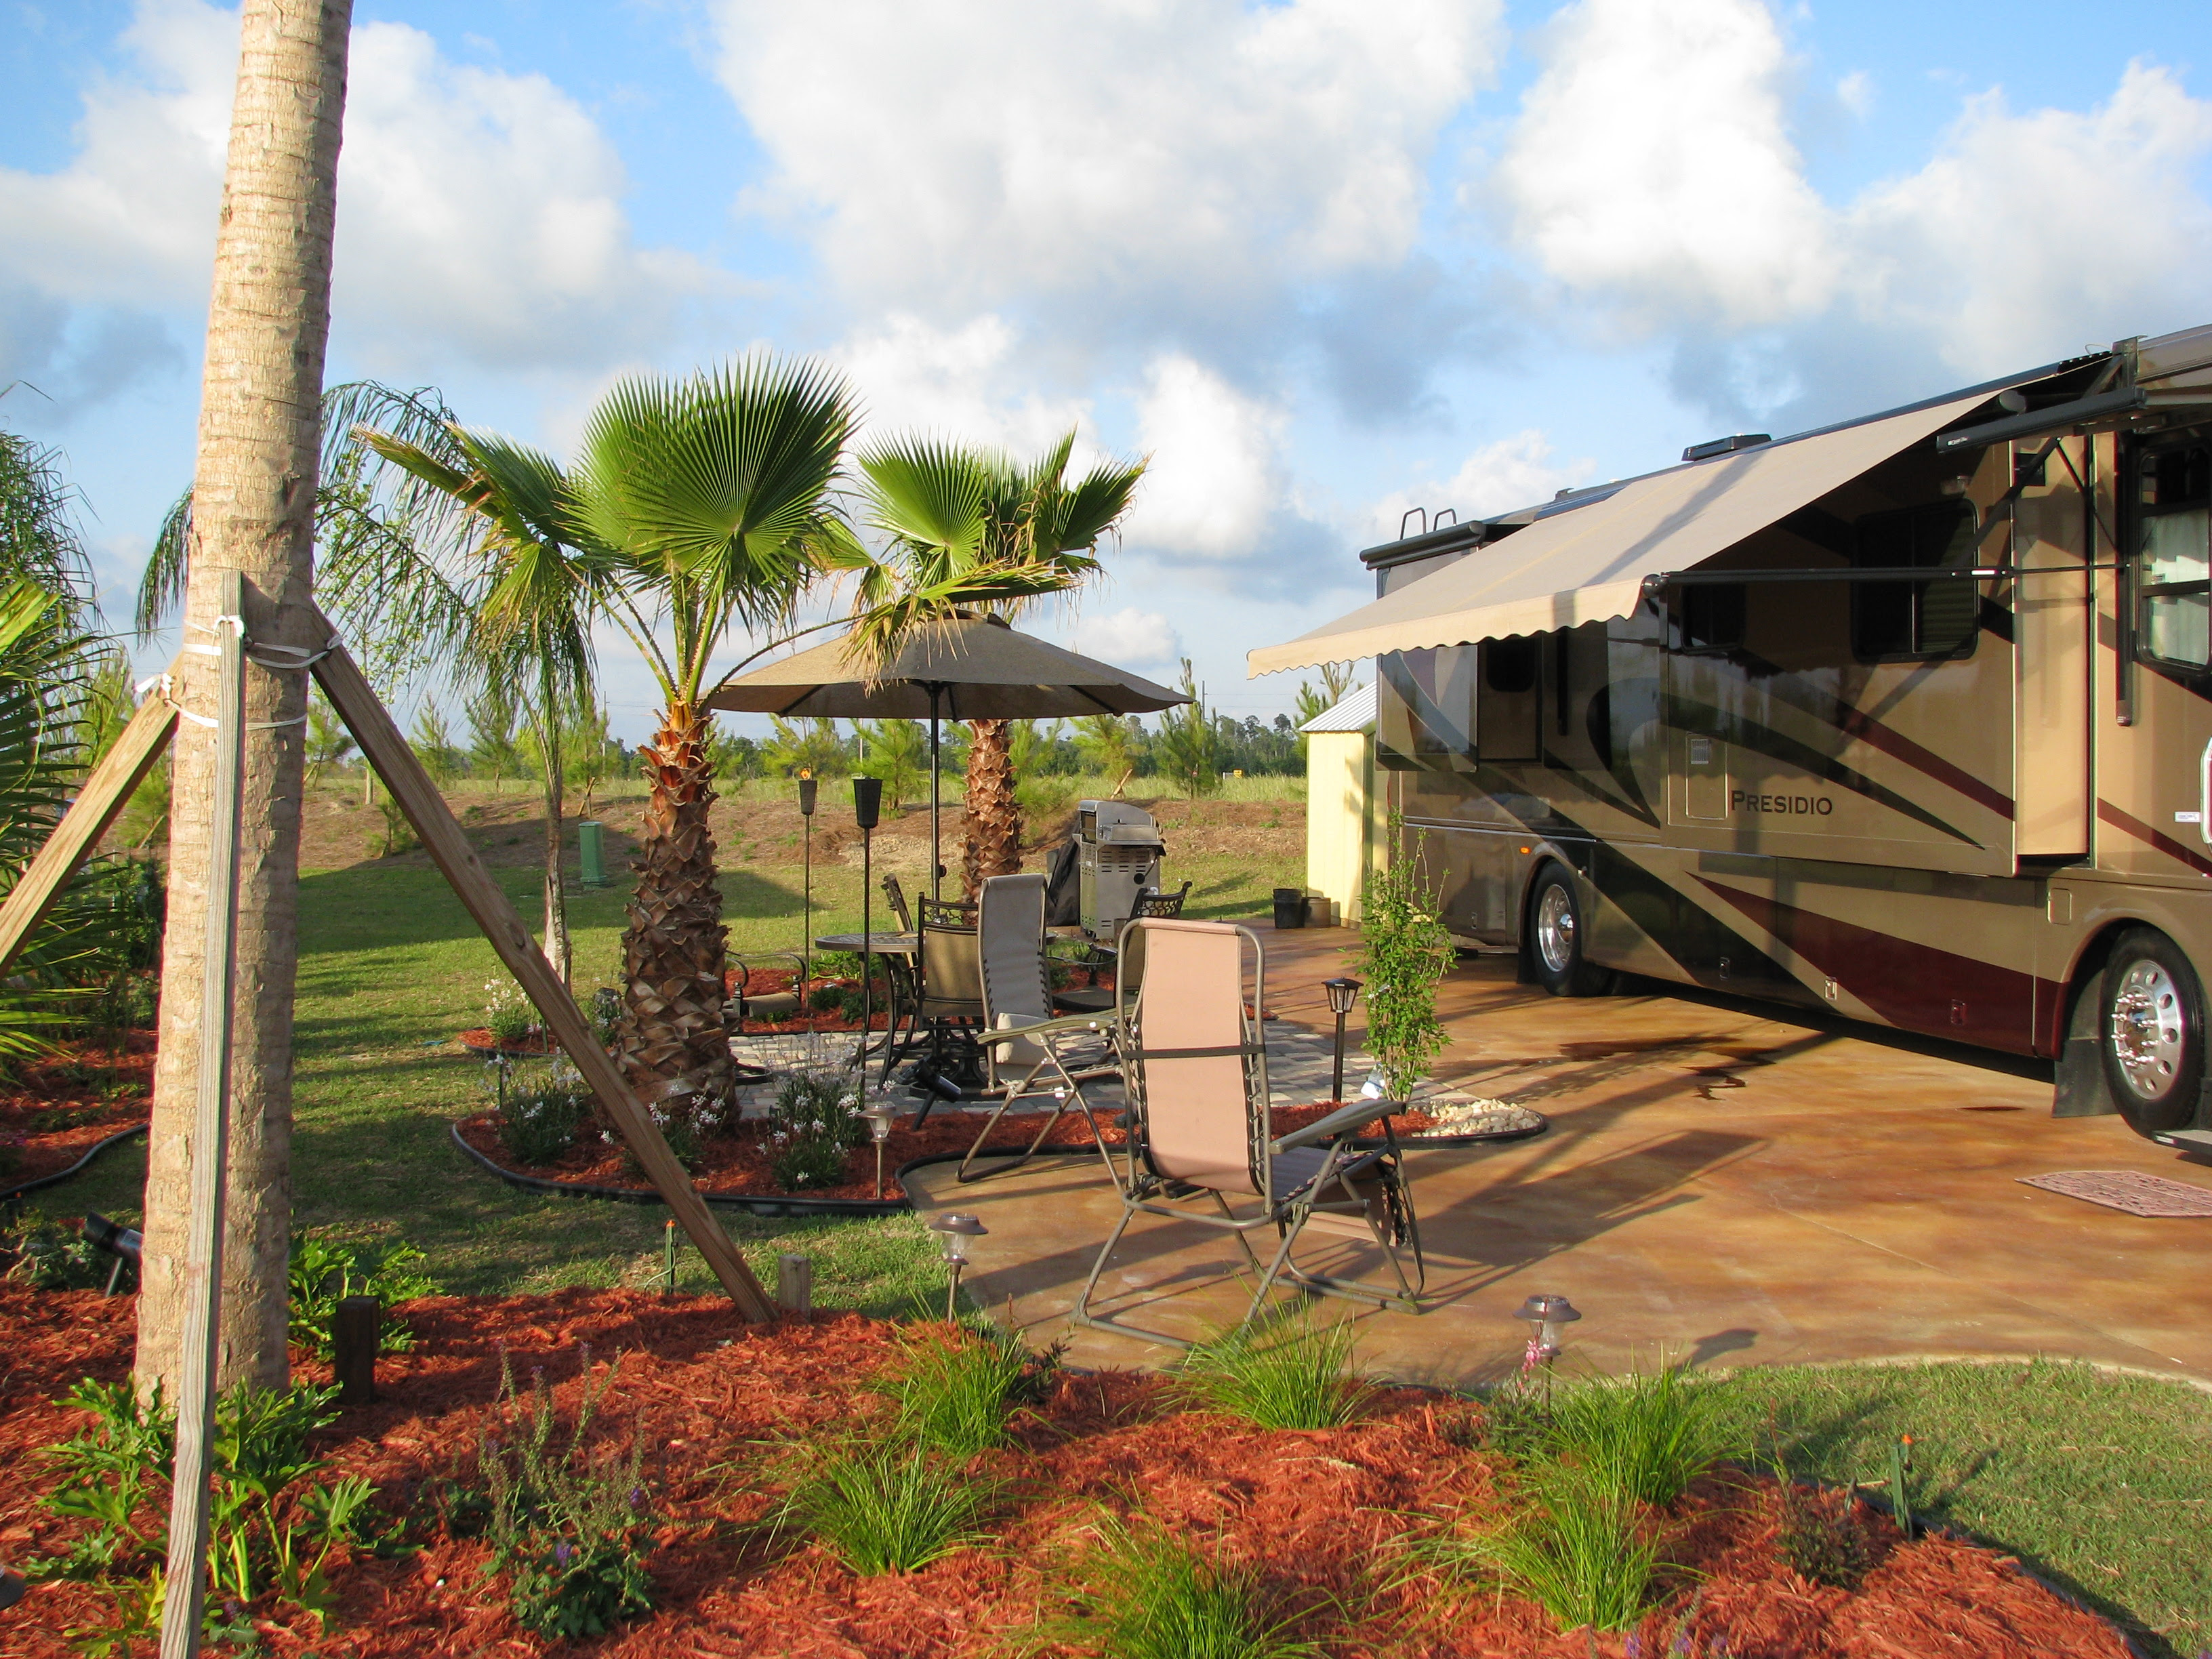 This luxury RV lot is for rent by the Day Week or Month